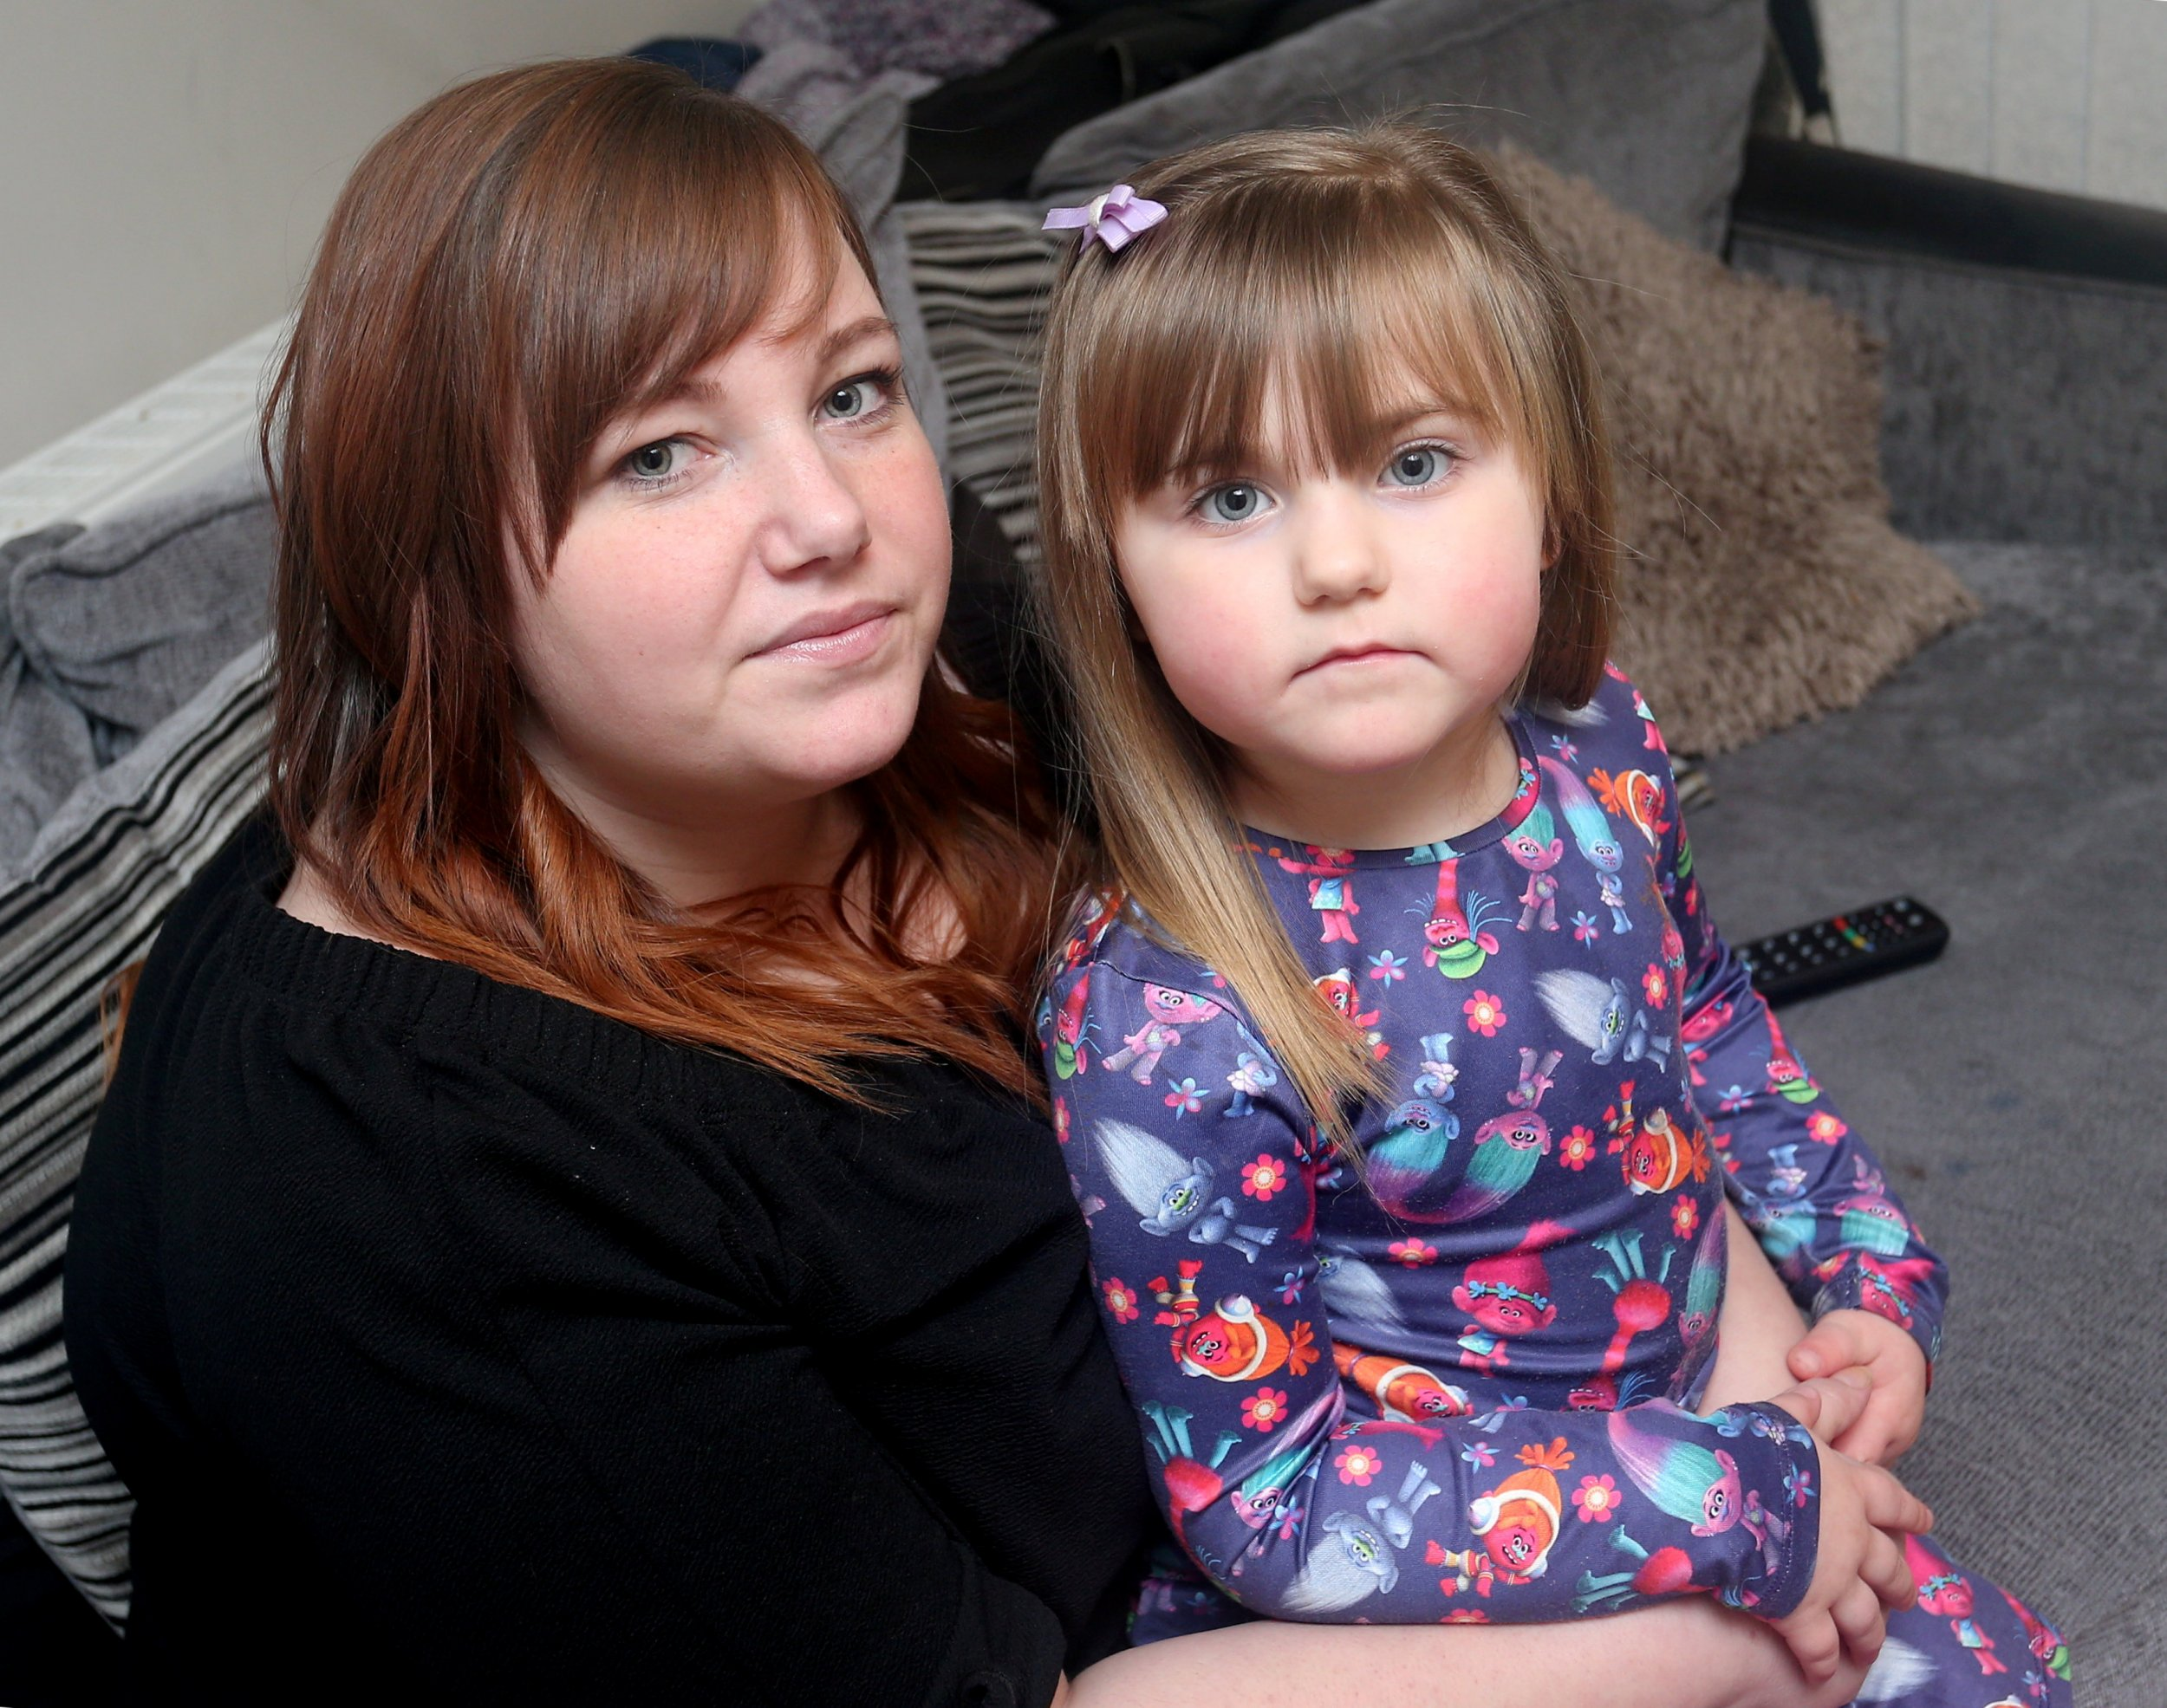 "(L- R) Tammy Dundon, 26 and her daughter Sophia Wood, 3, pictured at home in Bulwell. An angry mum says her daughter could have died after finding a battery inside a chocolate Easter bunny. See NTI story NTIBUNNY. The Co-op is now recalling its own-brand hollow milk chocolate Easter bunny foil figures after an alleged tampering incident in Nottingham. The National Crime Agency has also stepped in following the scare, as the Co-op says it is a ""criminal matter"". Tammy-Louise Dundon from Bulwell, Nottingham, bought one of the £1 treats from the branch in Arnold Road, Bestwood, on Saturday, for her three-year-old daughter Sophia Wood. She says the youngster bit the ears off the rabbit, only to find a single-cell battery, similar to those found in hearing aids, inside the hollow rabbit. It comes after a similar incident at Christmas, which resulted in chocolate Santas being recalled due to batteries being found inside the products."